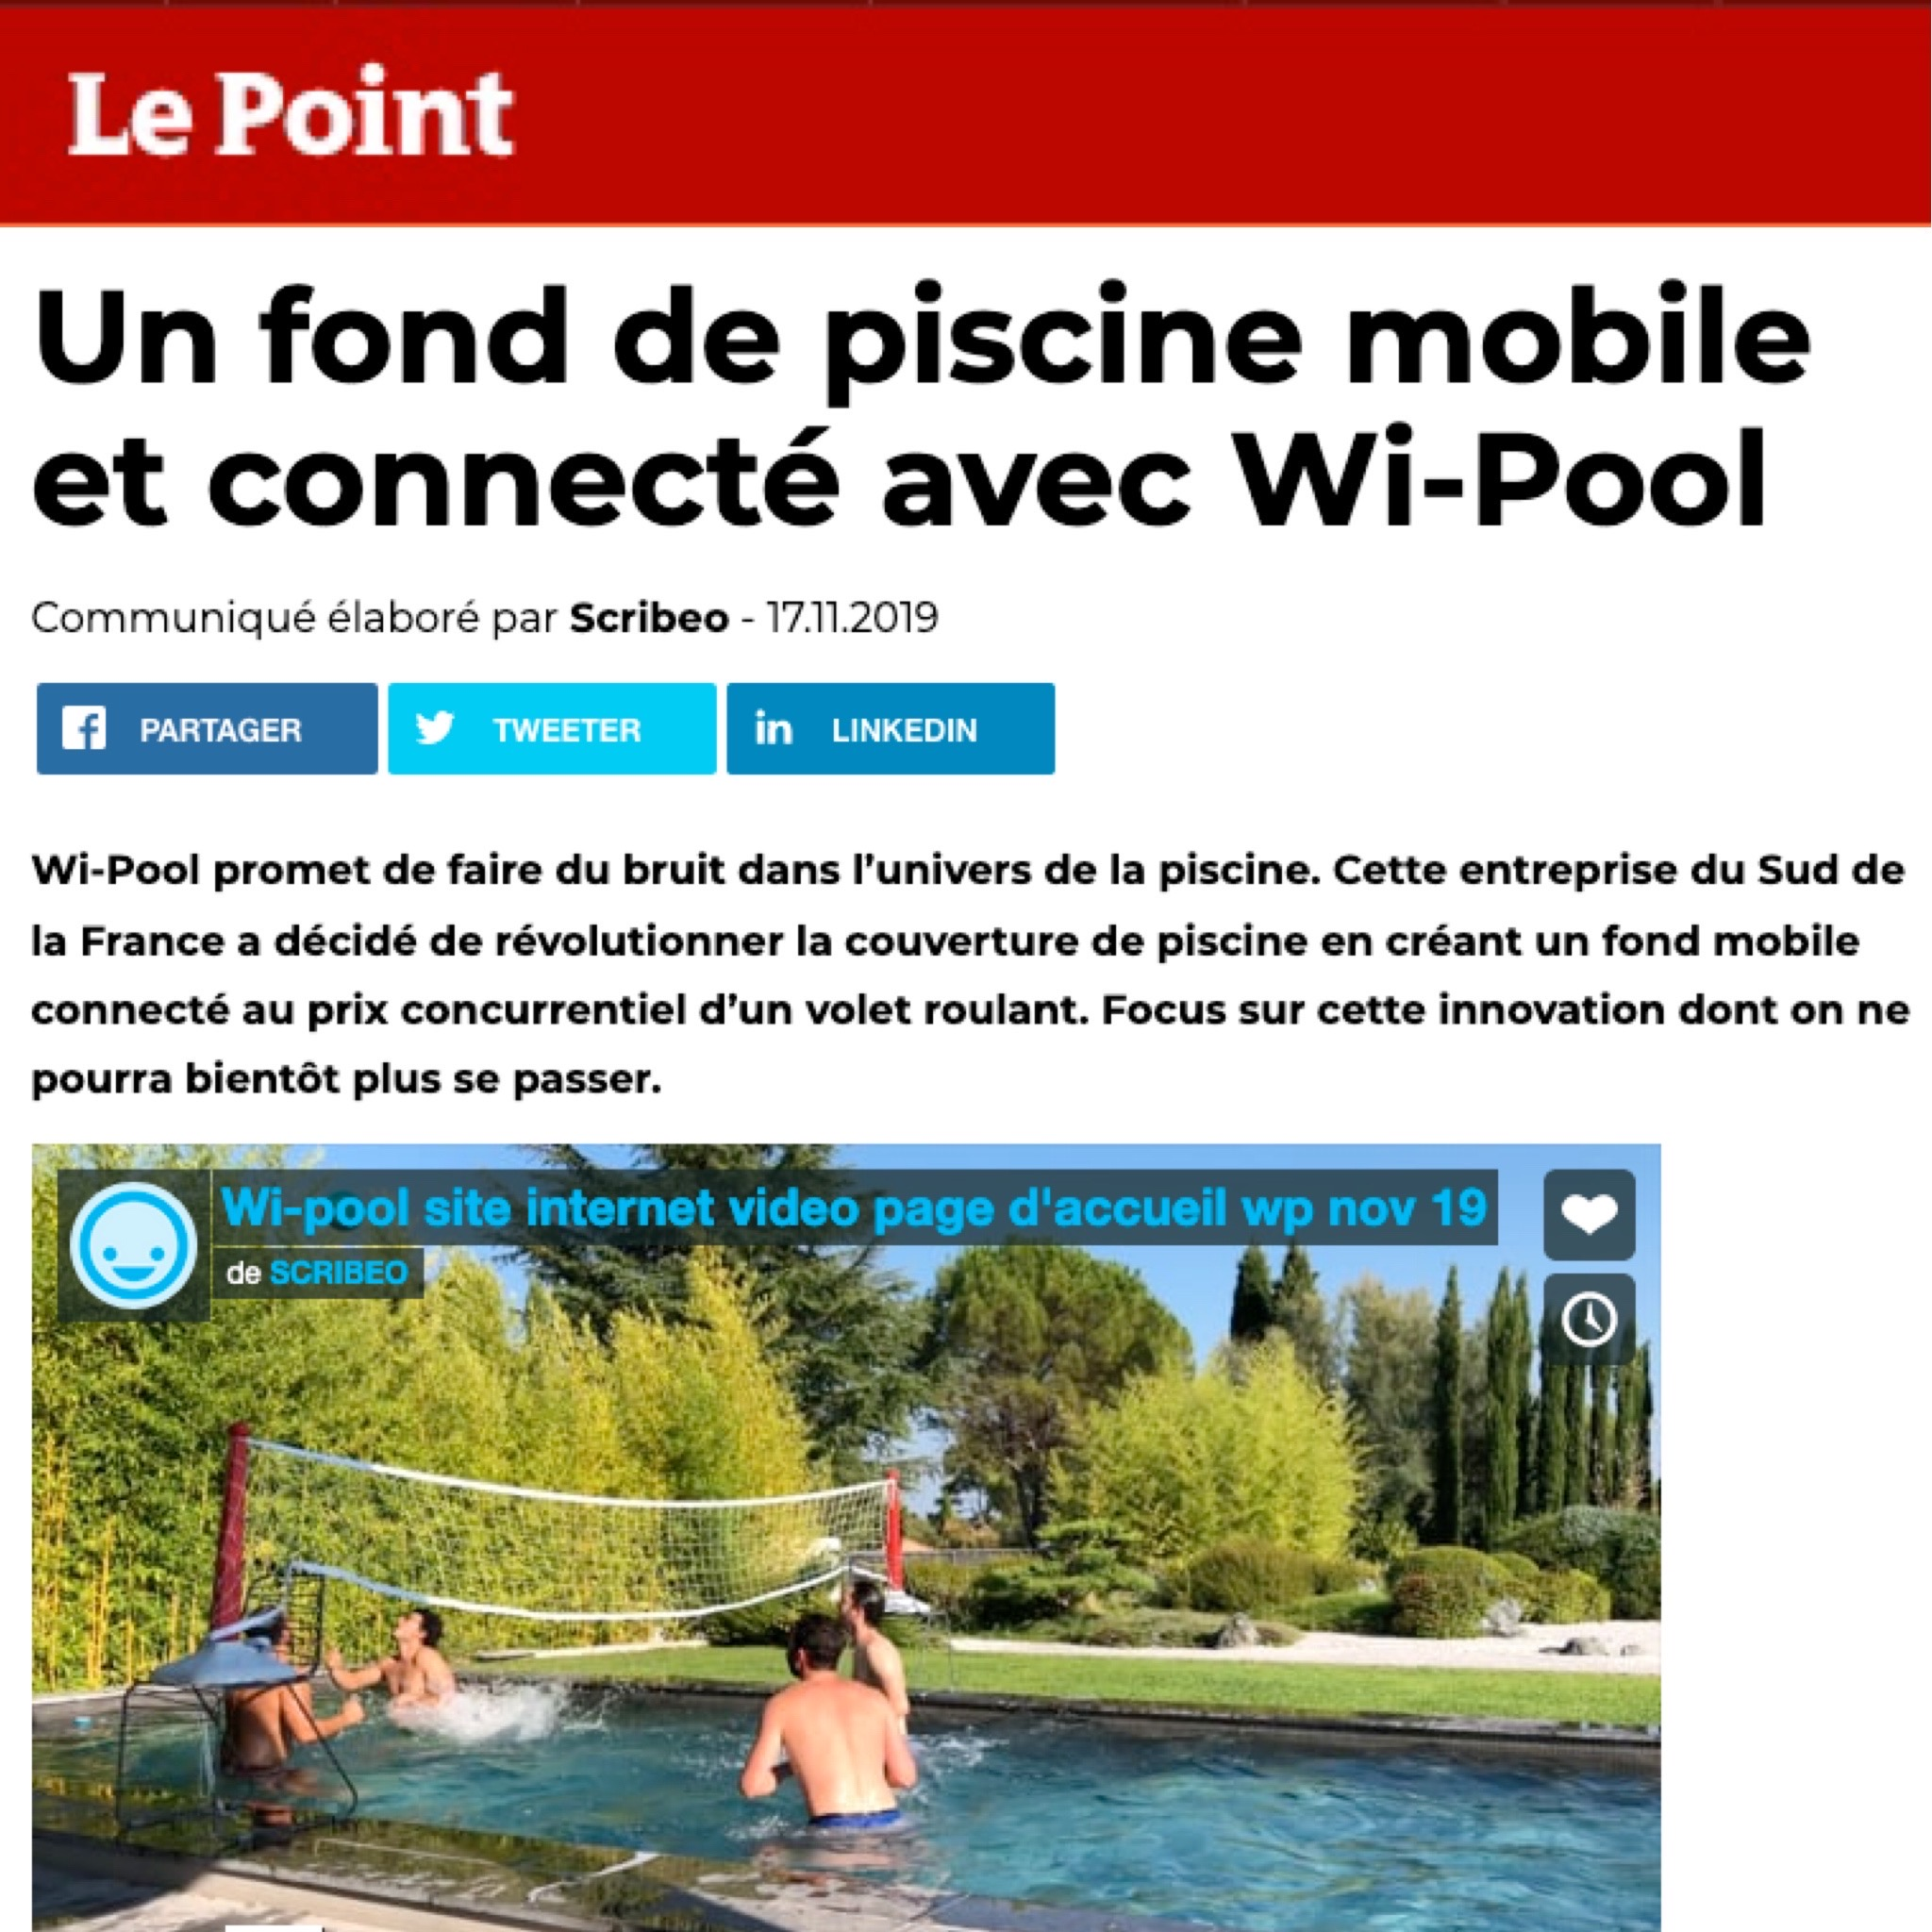 Le-Point-Wi-Pool-fond-mobile